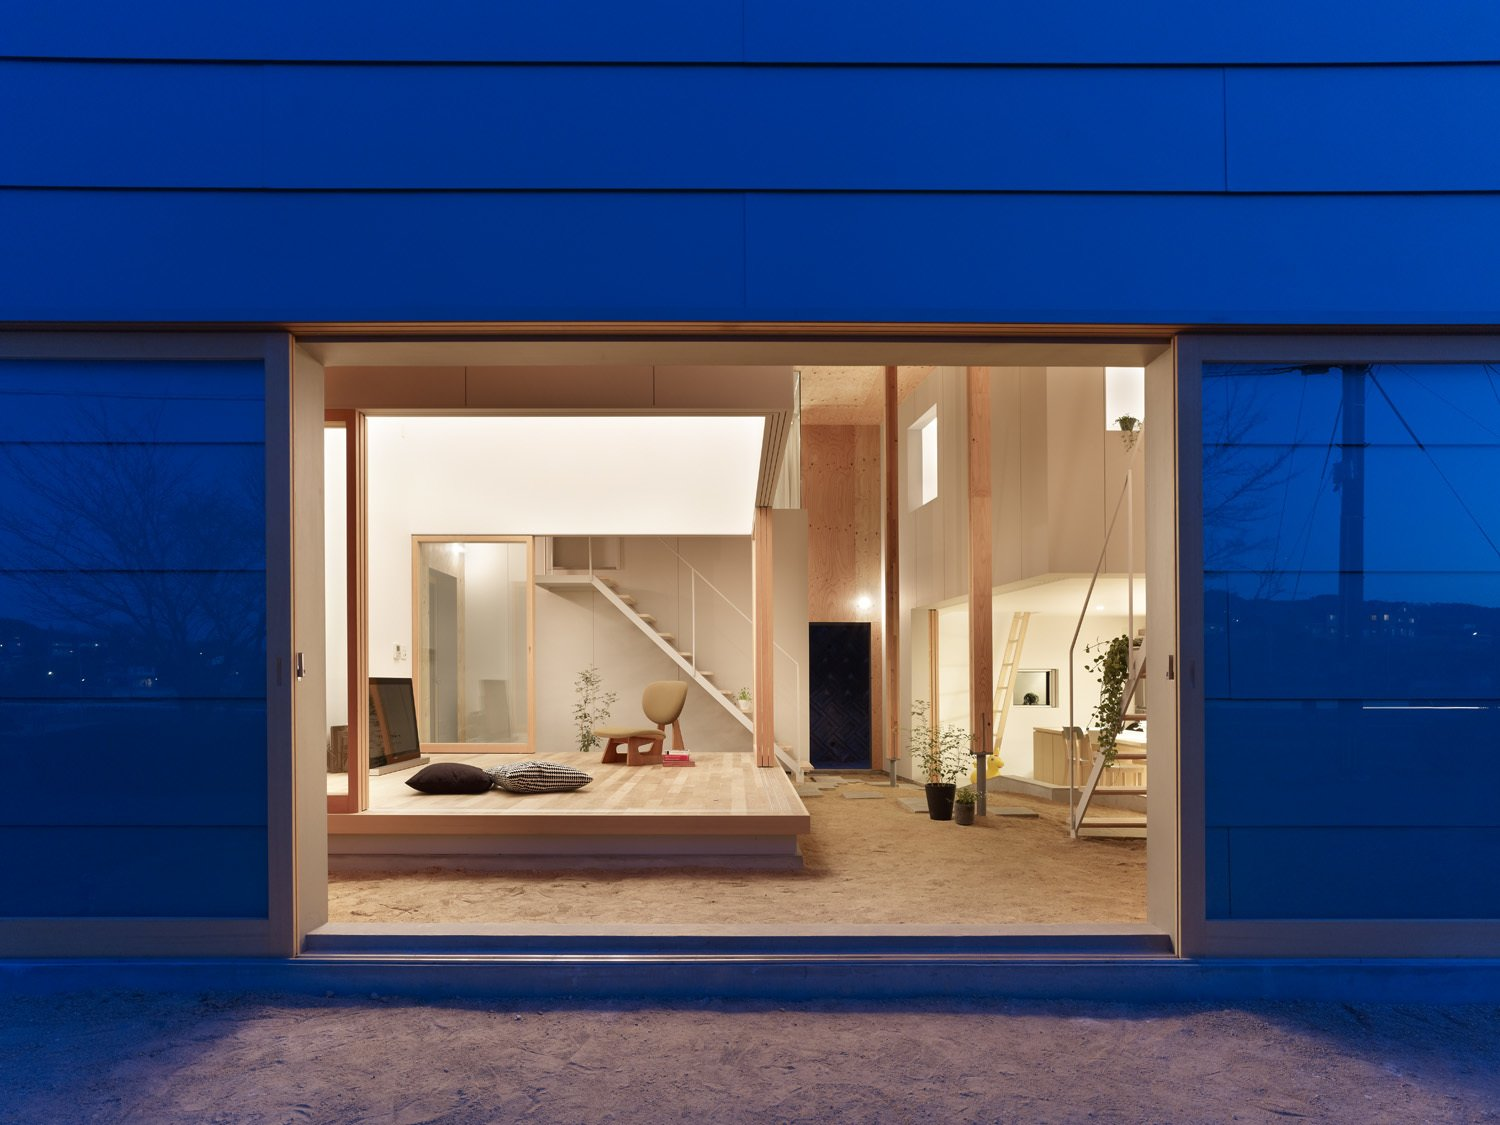 """Doors and Exterior """"We hope that in time the house will make the client's lifestyle better by providing spaces that can change as they progress in life, much like how an outdoor space constantly changes with the environment,"""" say the architects.  Photos from A Dirt Floor Snakes Through This Spectacular Japanese House"""